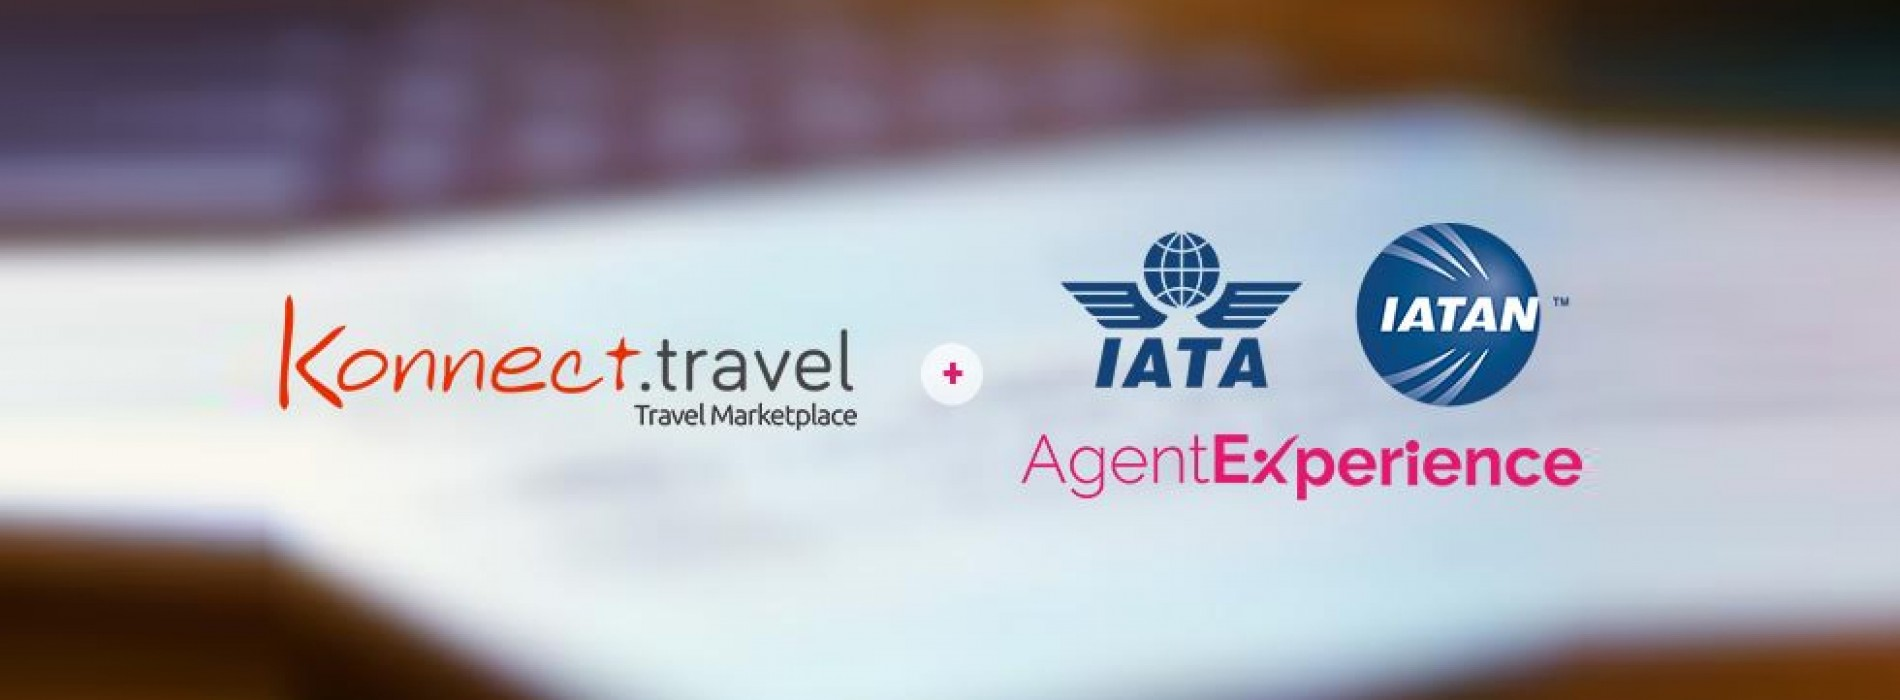 QuadLabs & IATA jointly launch the new AgentExperience site based on Konnect platform